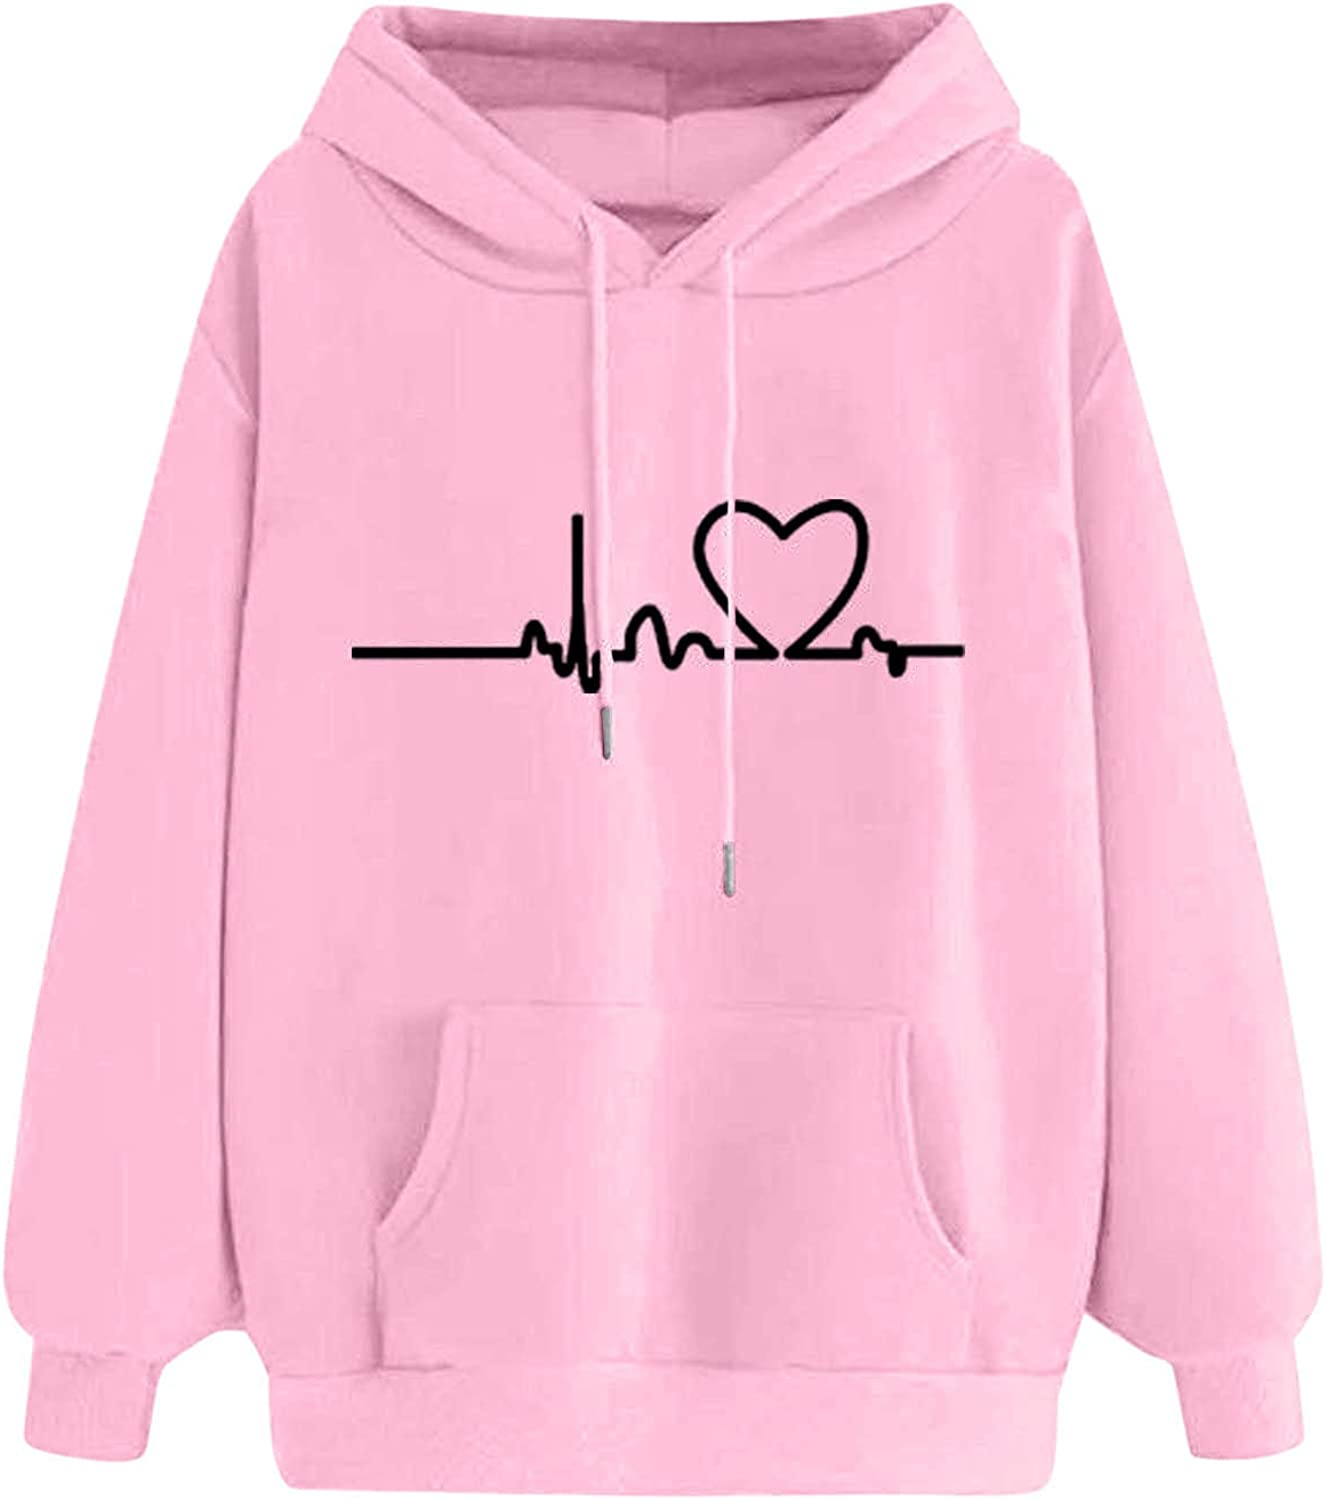 Pullover Superior Hoodies for Women Autumn NEW Print Love Loose Hood Winter